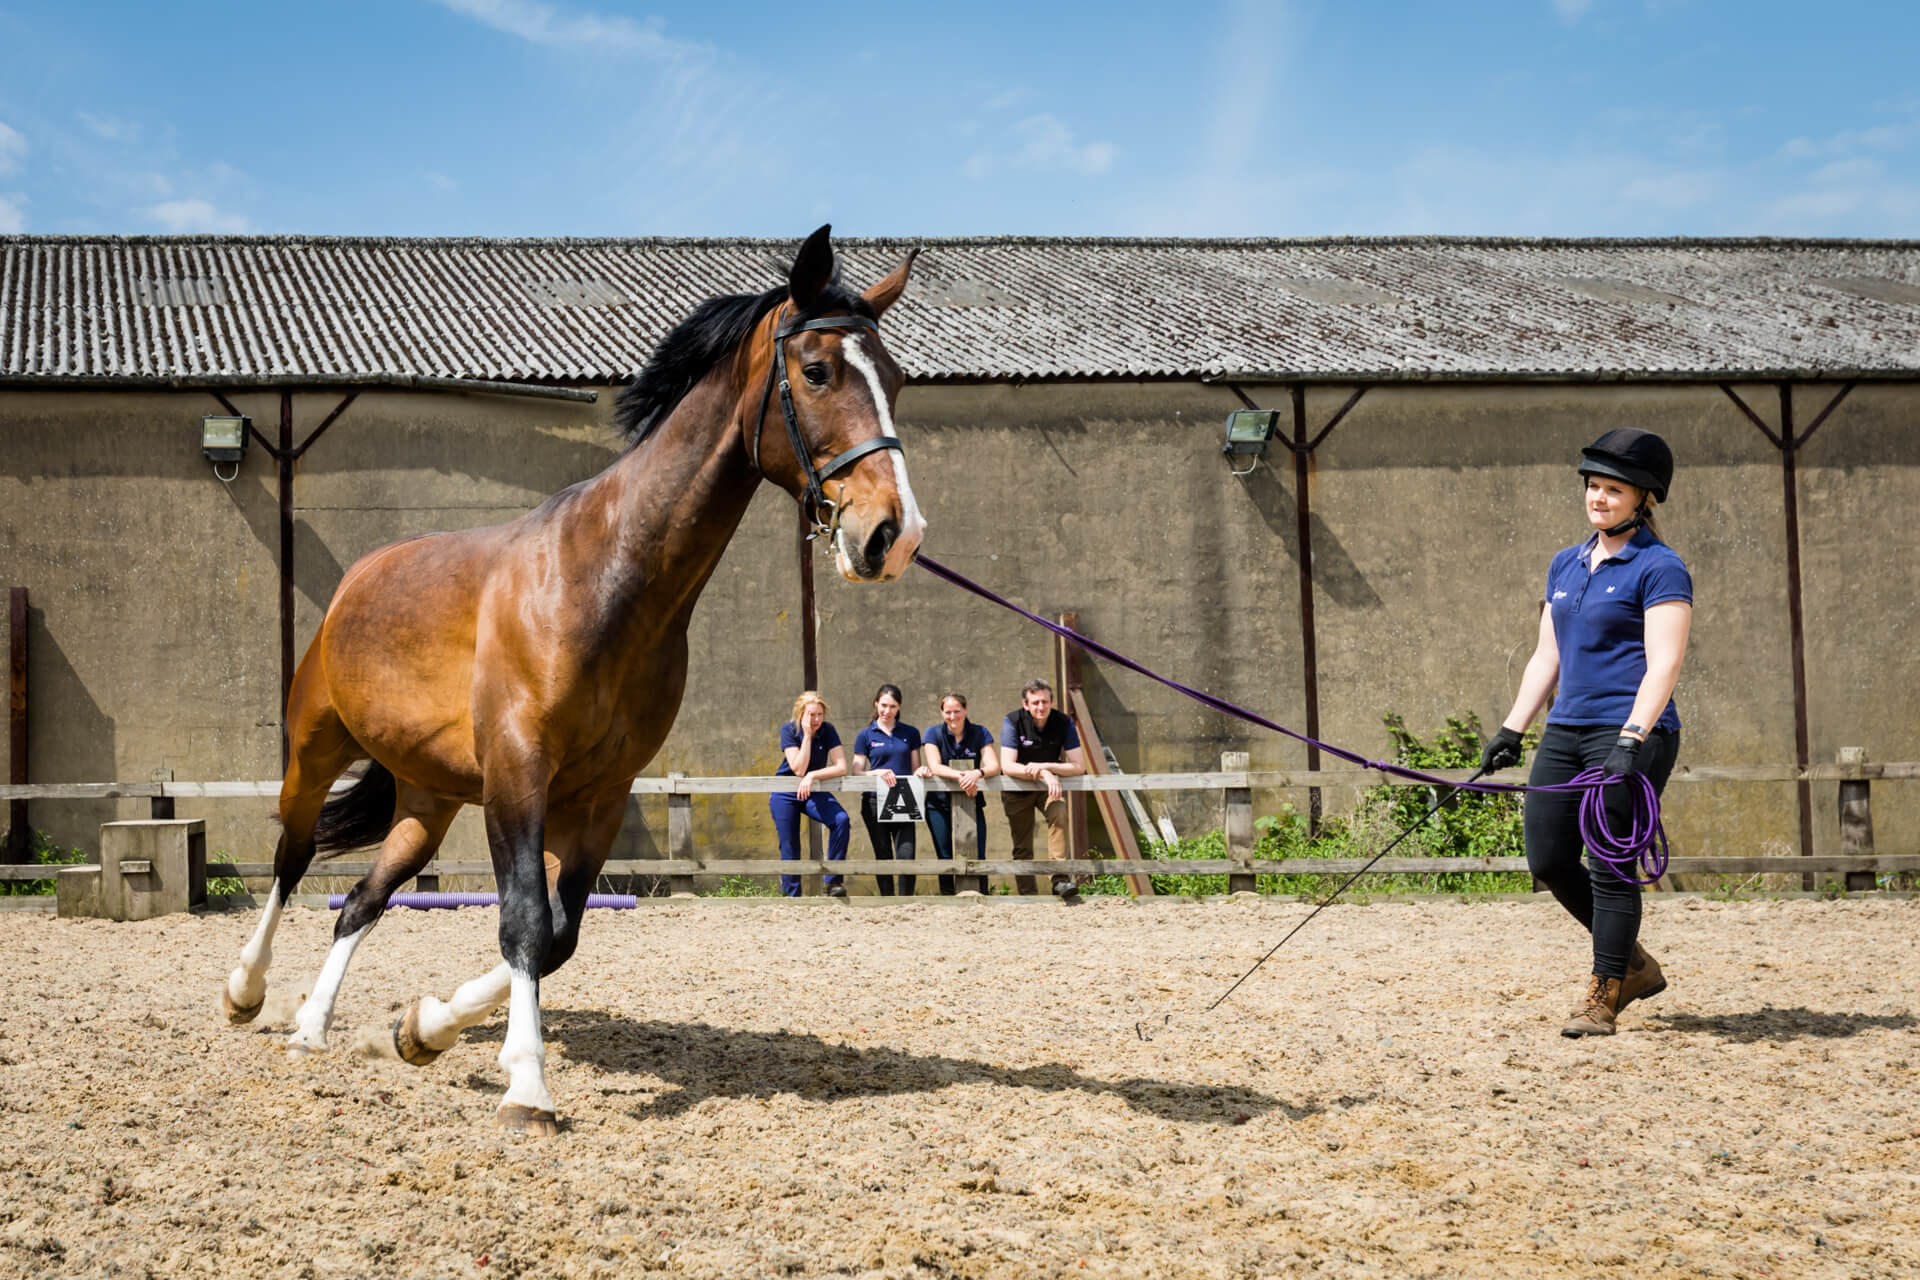 trainer running a horse around a paddock